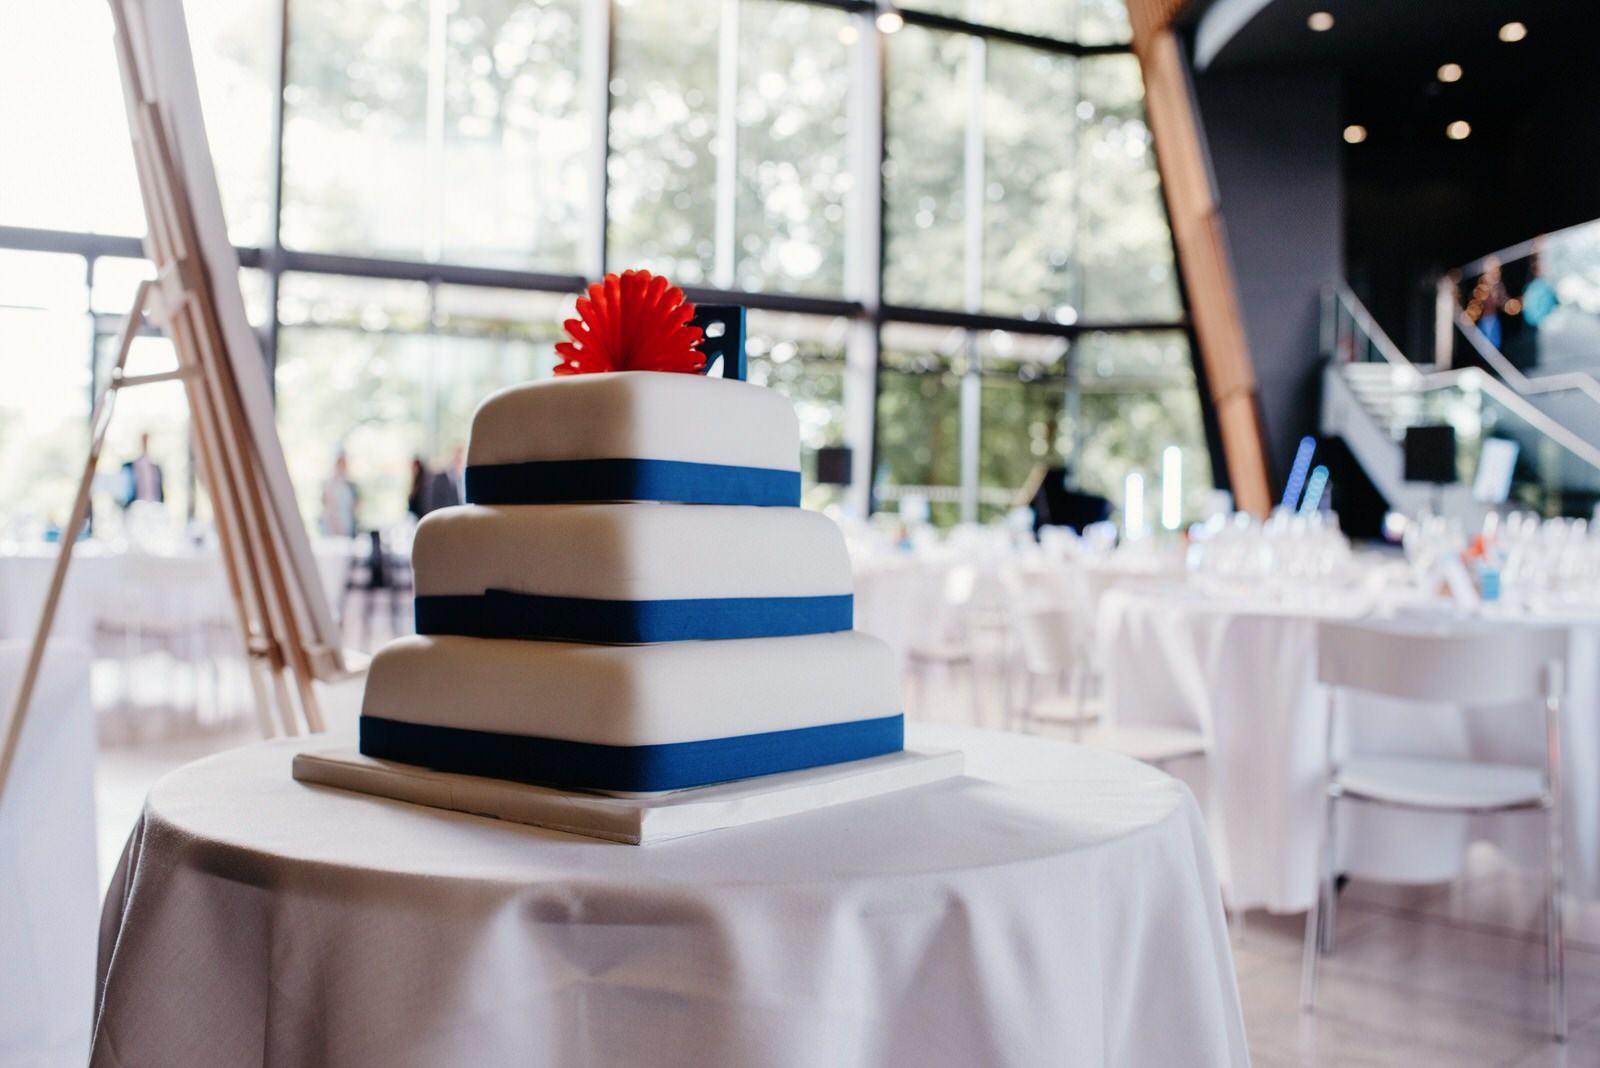 Simple square wedding cake with blue ribbon and orange origami decoration